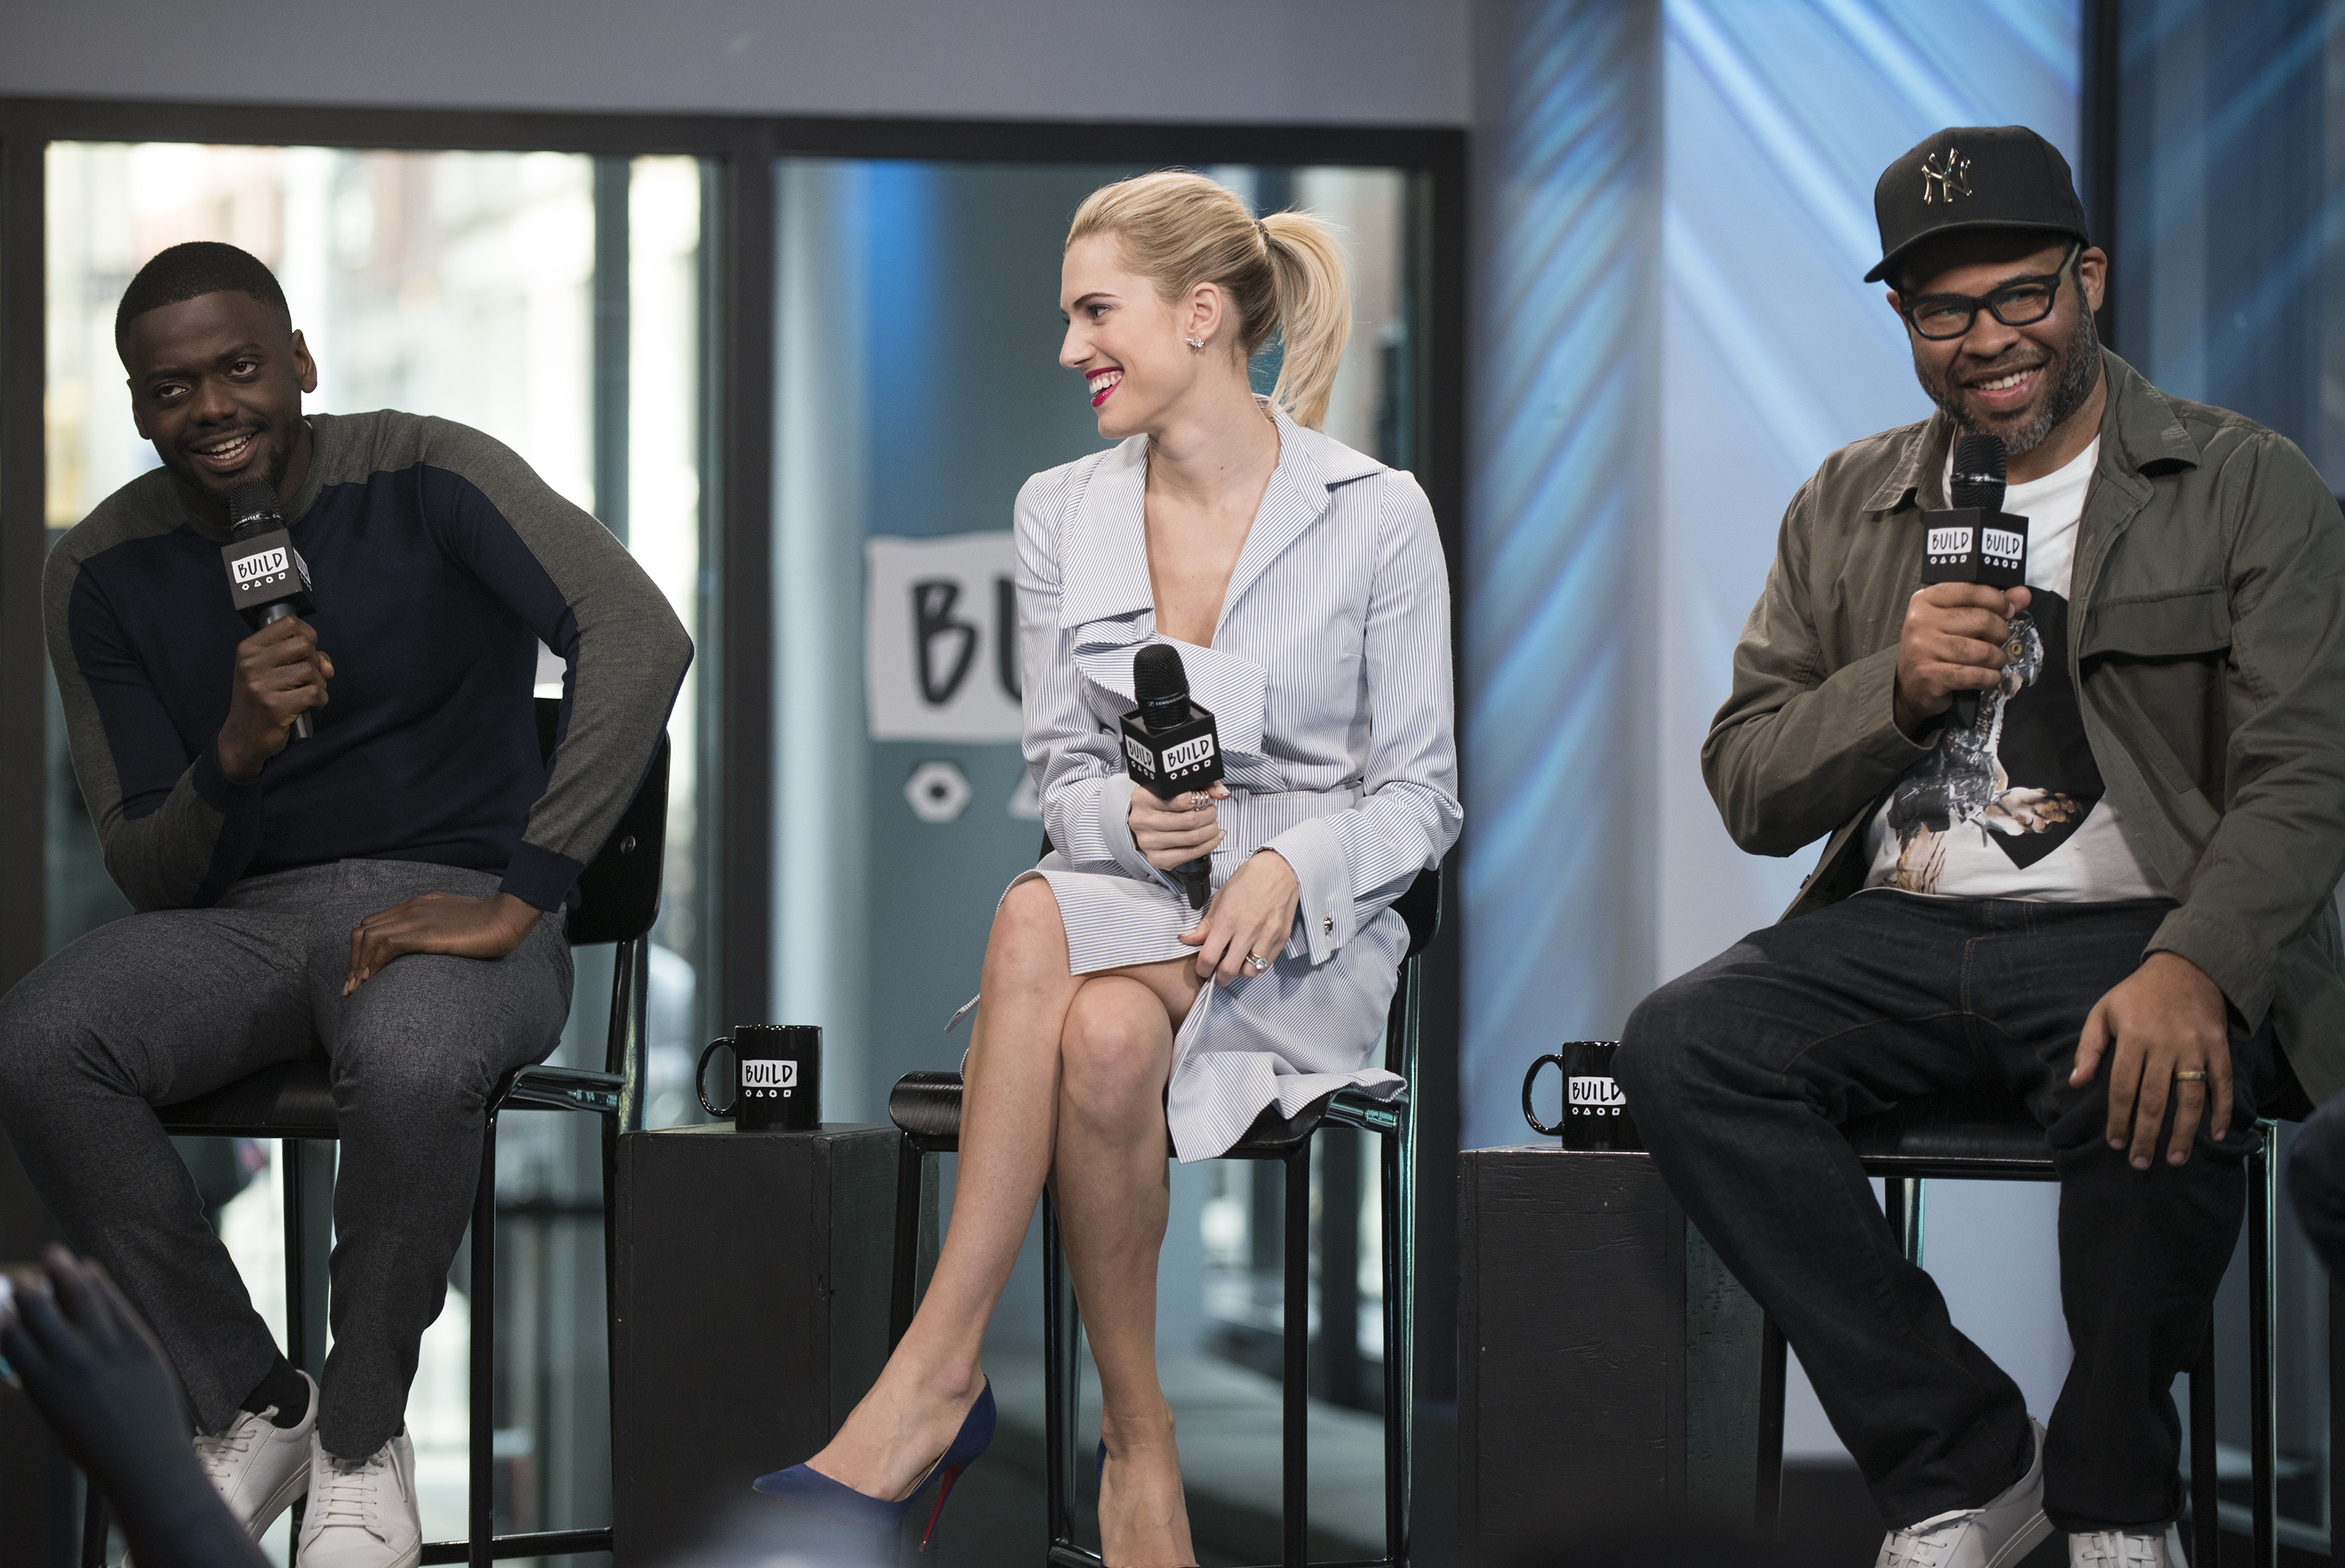 Build Series Presents Jordan Peele, Allison Williams and Daniel Kaluuya Discussing 'Get Out'